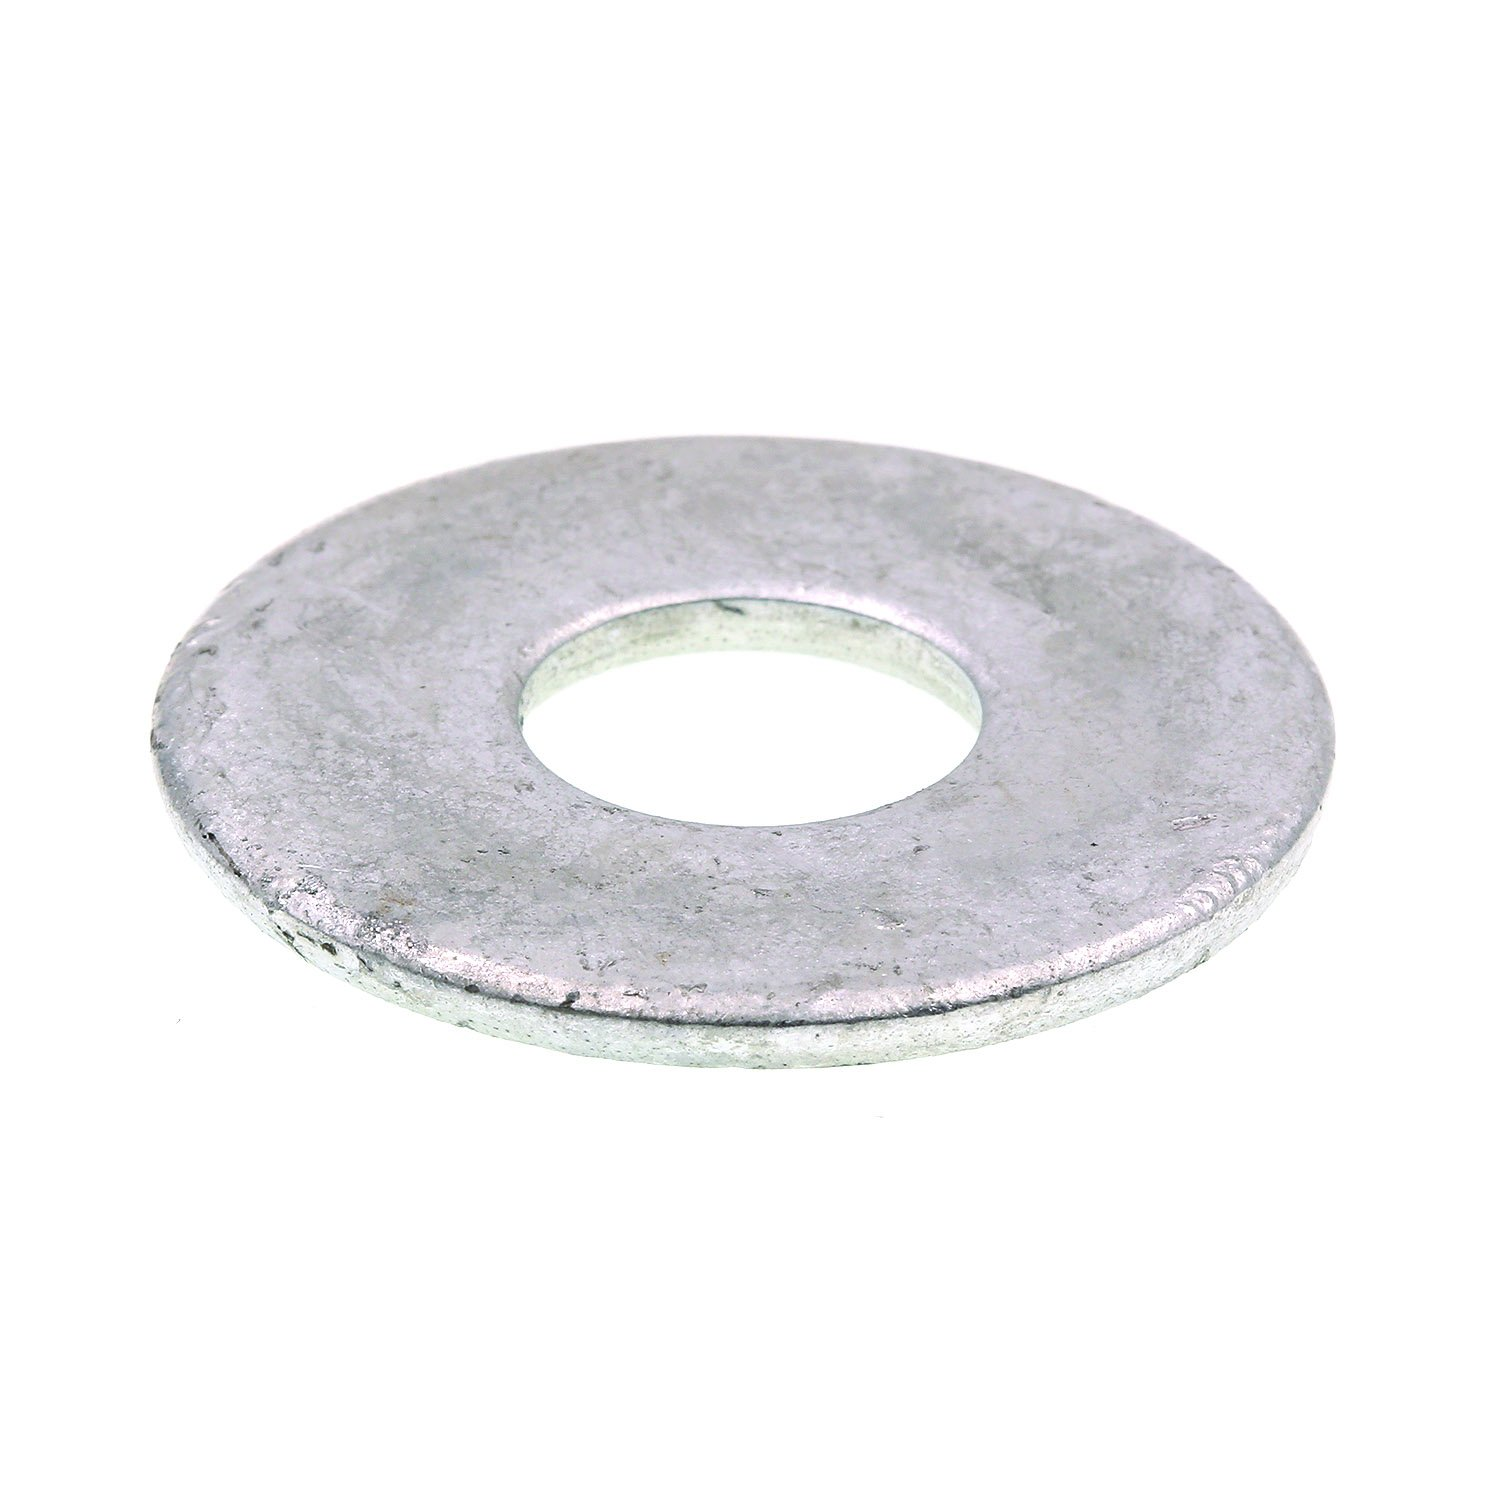 OD USS X 1-3//4 in 5//8 in Hot Dip Galvanized Steel Prime-Line 9080272 Flat Washers 25-Pack